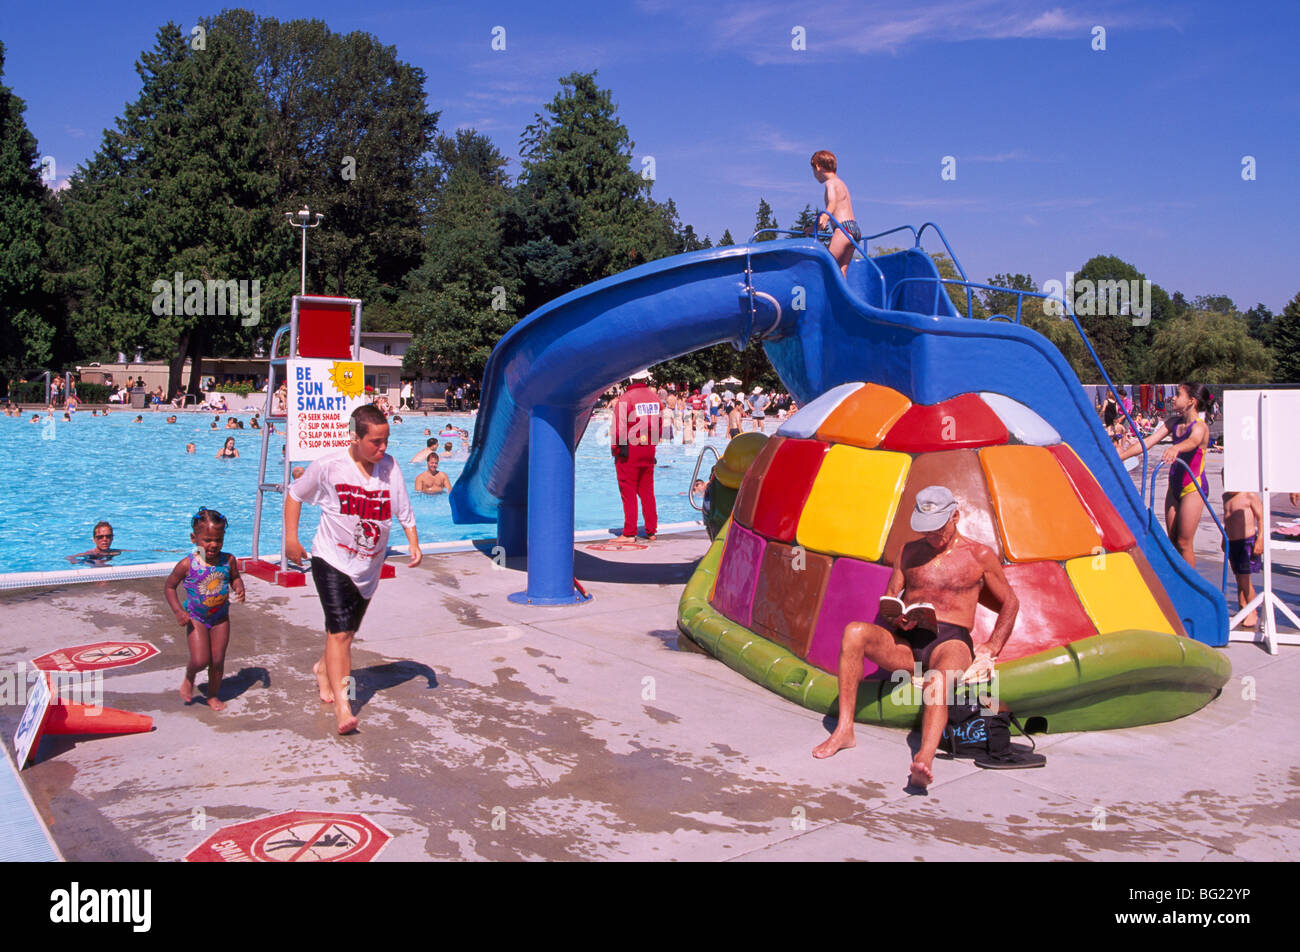 Children 39 s water slide at outdoor swimming pool stanley park stock photo 27091114 alamy for Swimming pool supplies vancouver